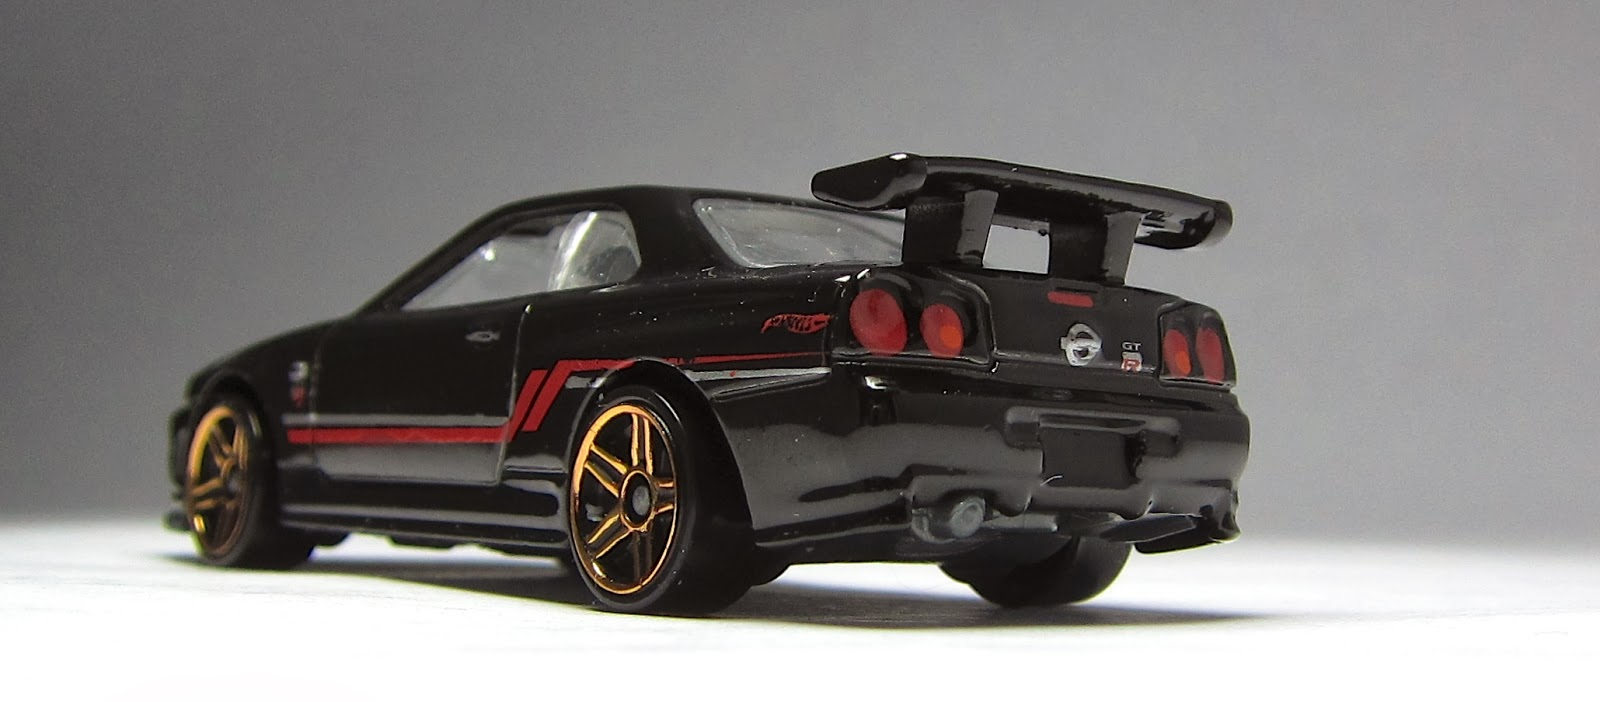 Nissan nissan sky : First Look: Newly modified Hot Wheels Nissan Skyline GT-R R34 ...